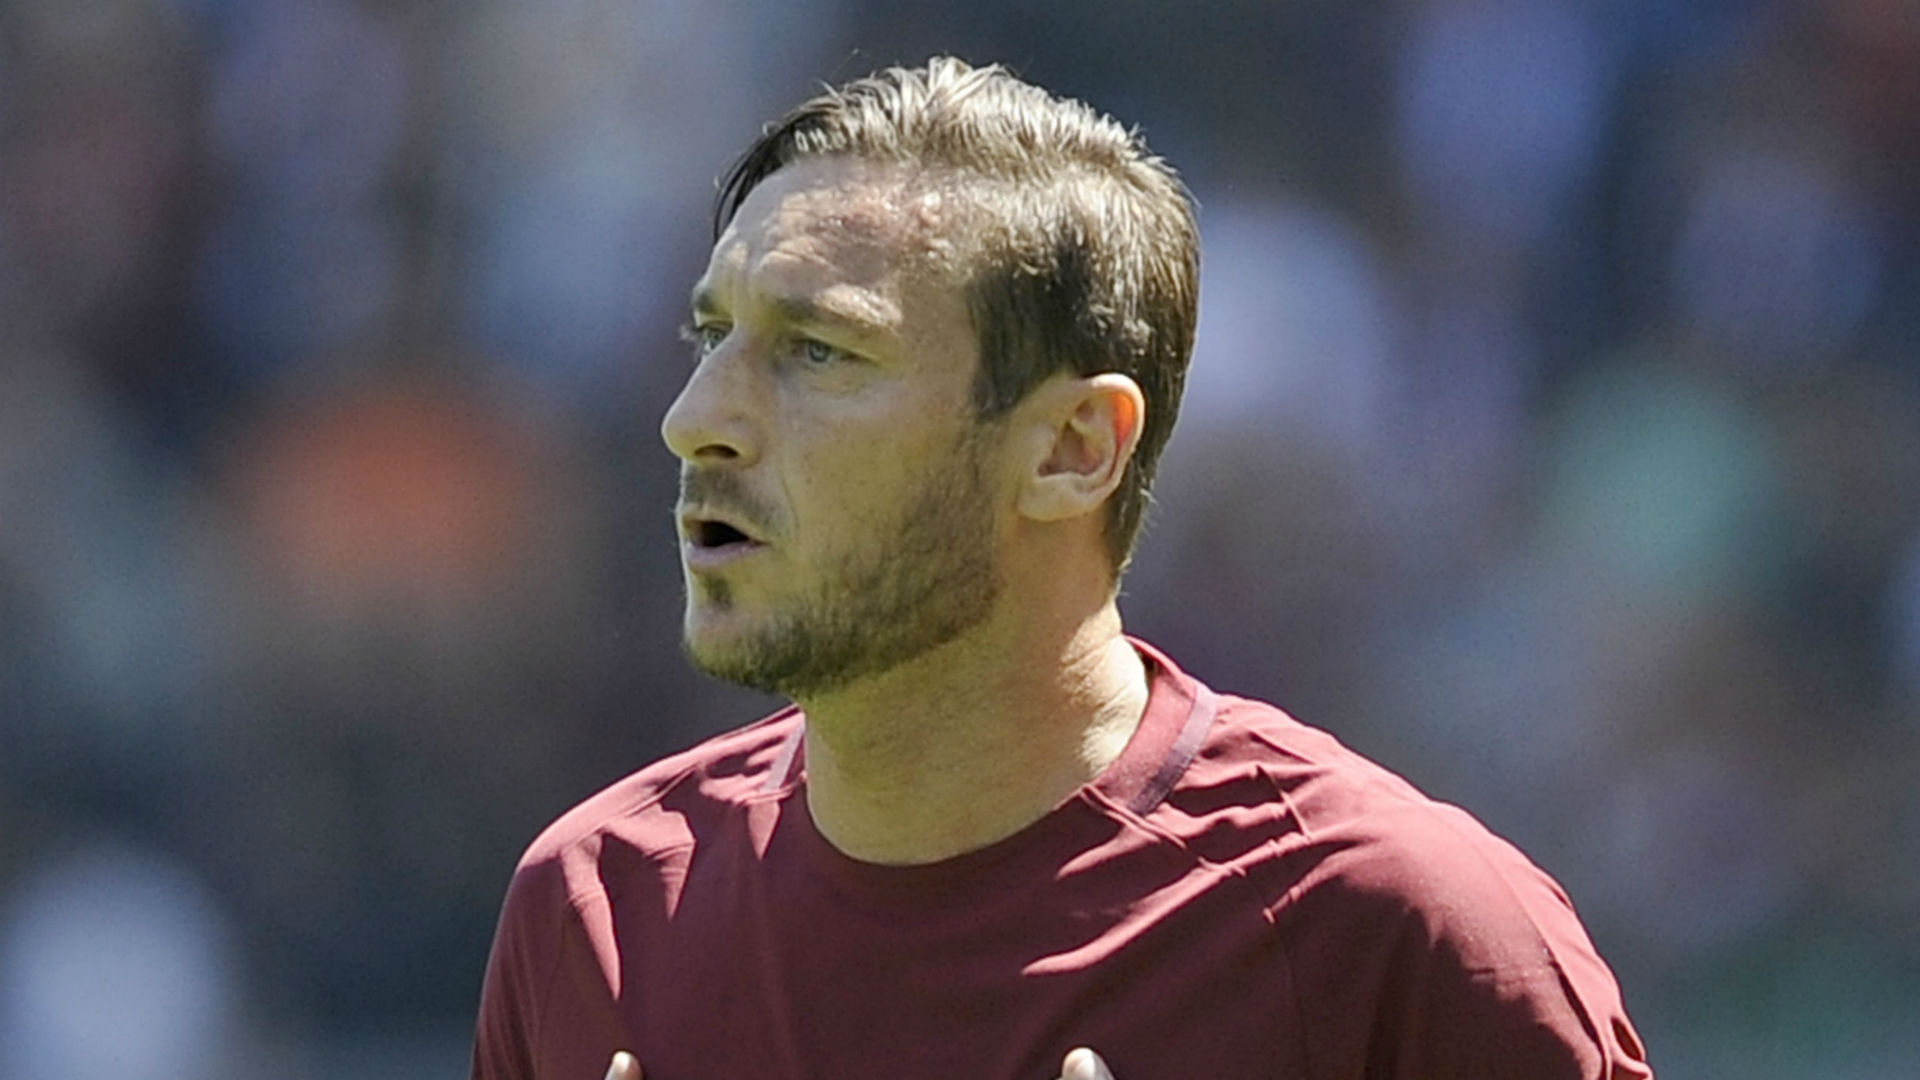 Roma coach Spalletti exasperated over Totti situation